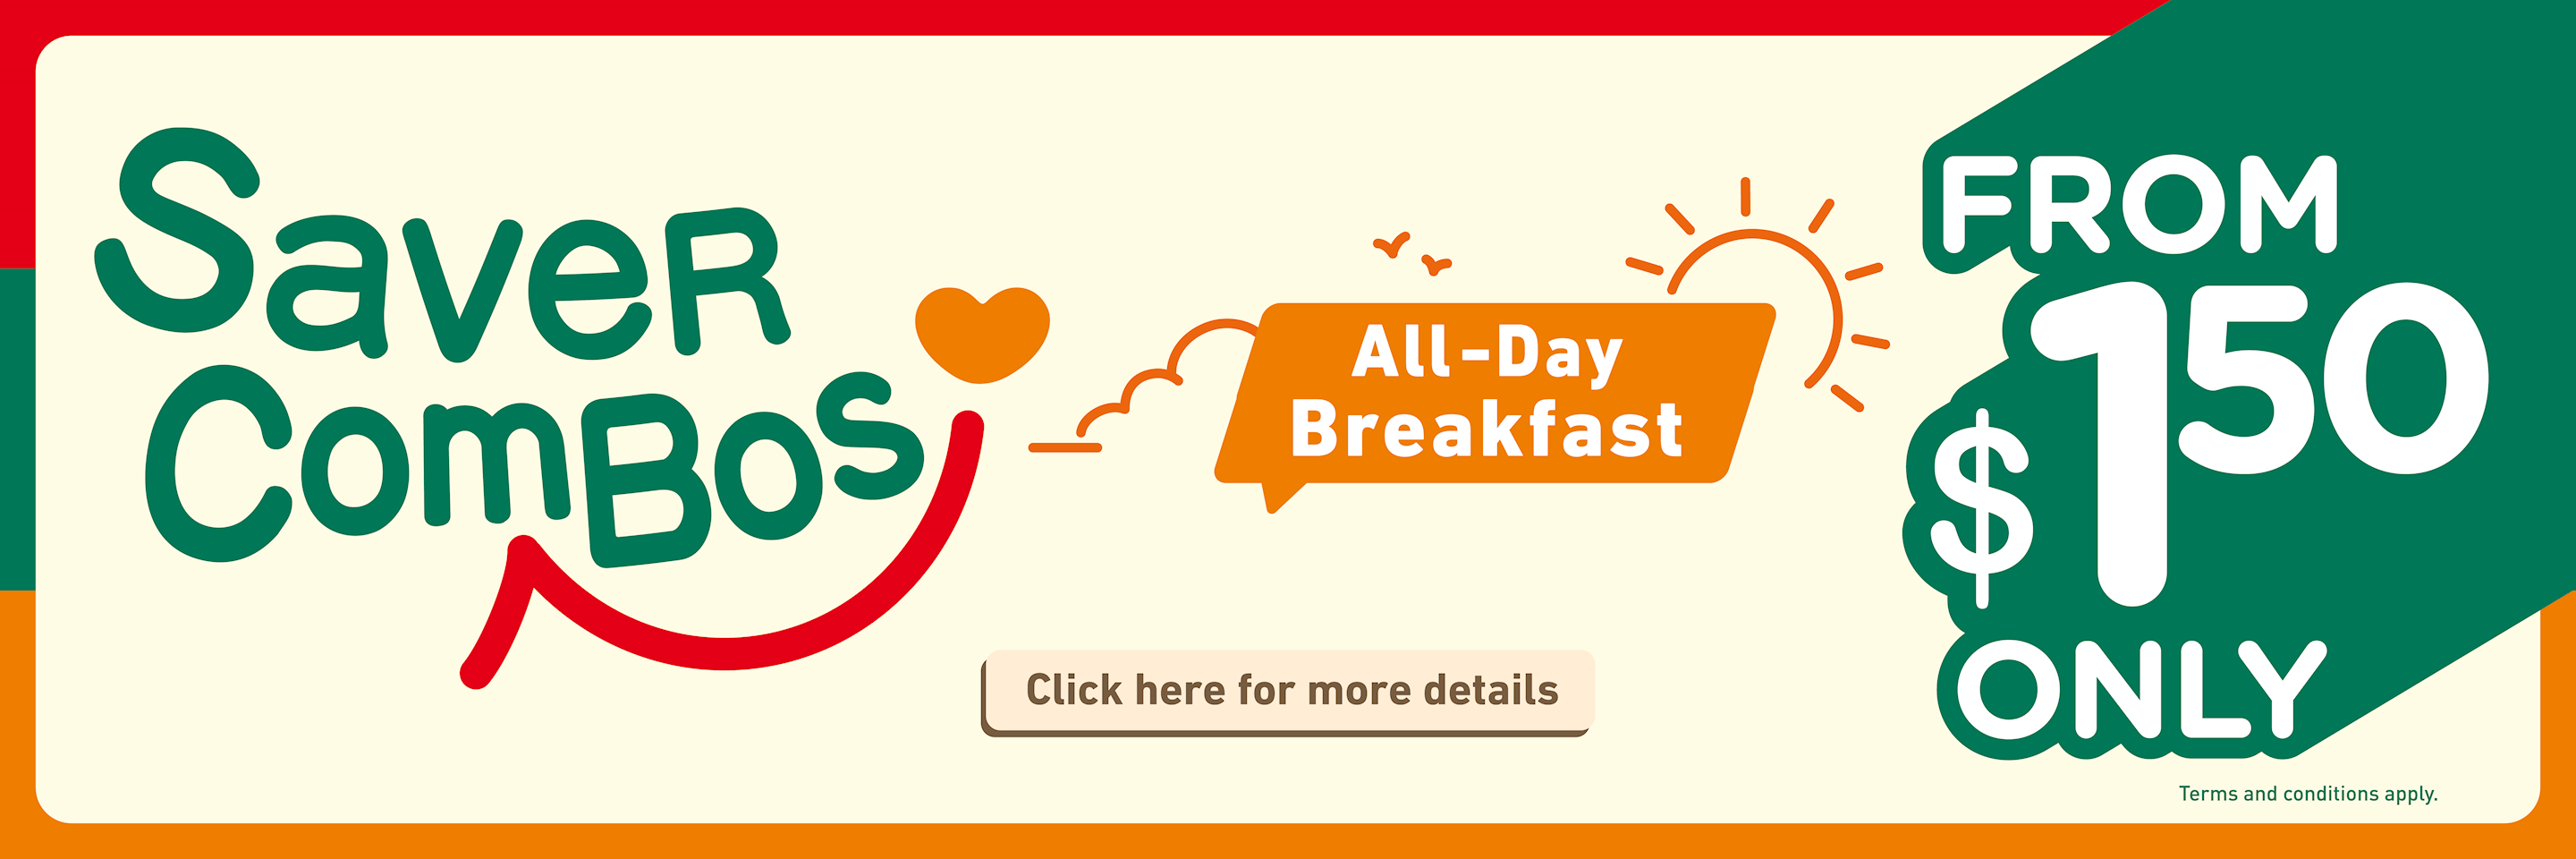 All-Day Breakfast Saver Combos!